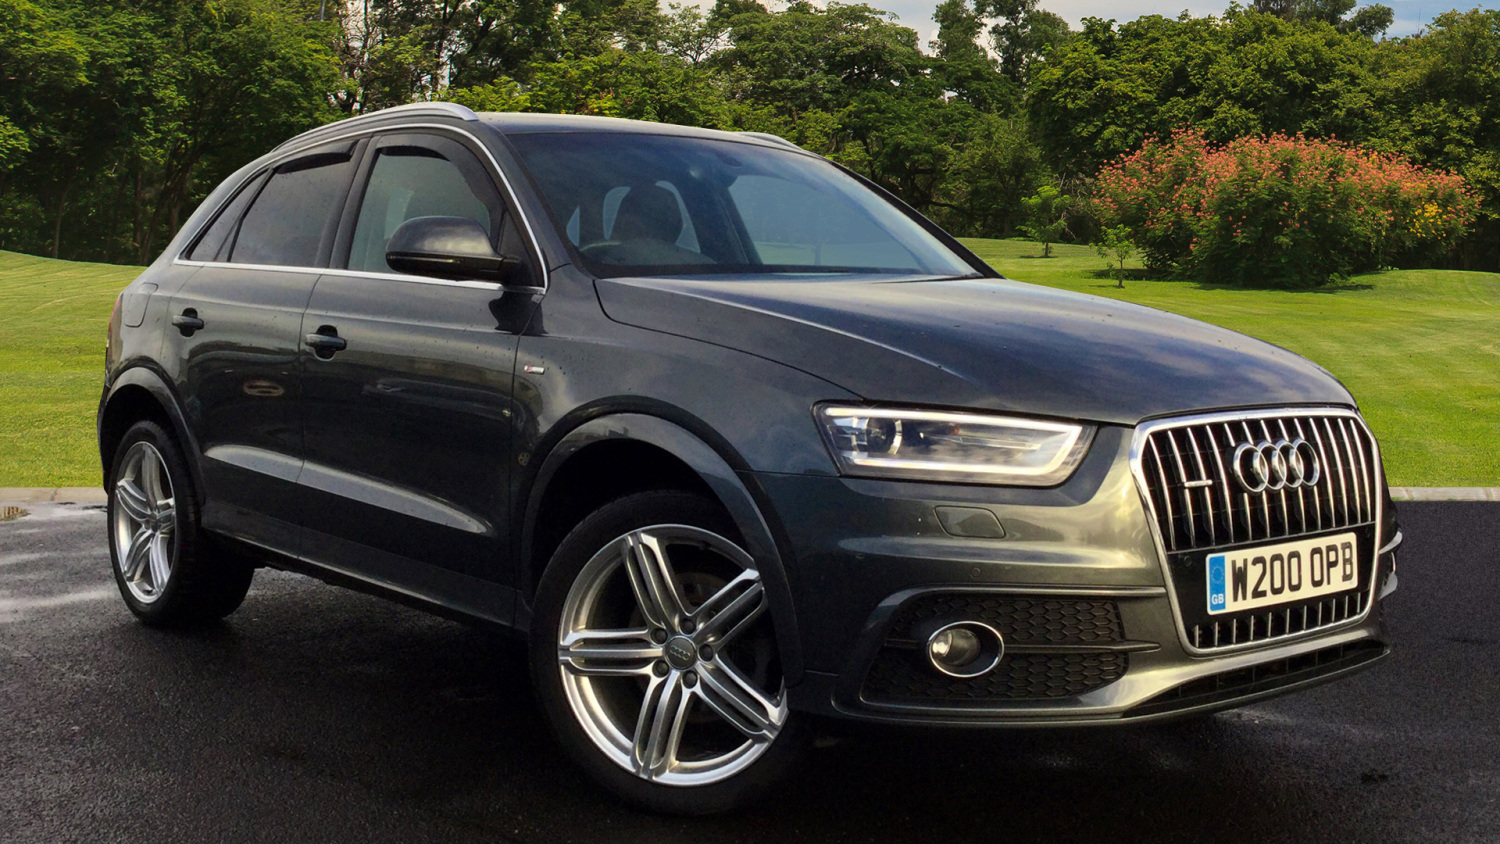 used audi q3 2 0 tdi 177 quattro s line plus 5dr s tronic diesel estate for sale vertu honda. Black Bedroom Furniture Sets. Home Design Ideas